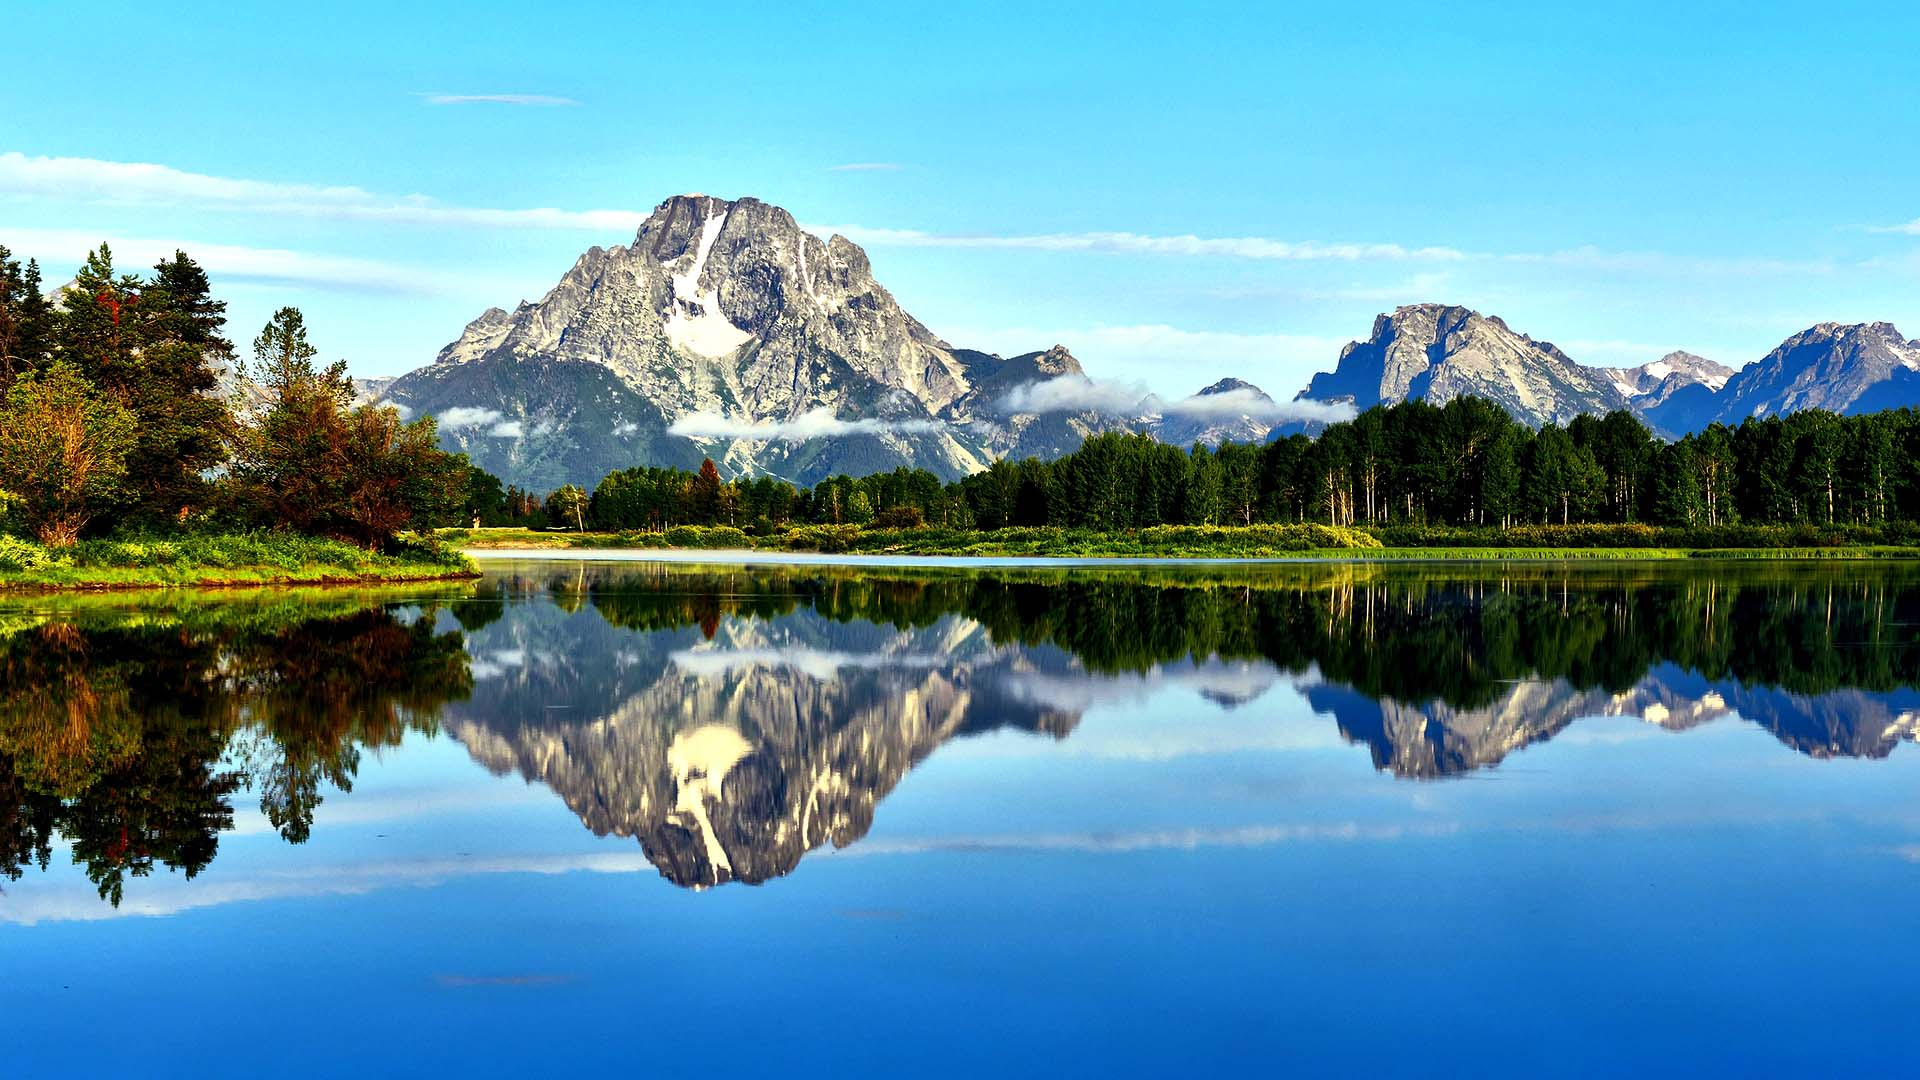 widescreen mountain hd desktop backgrounds free images